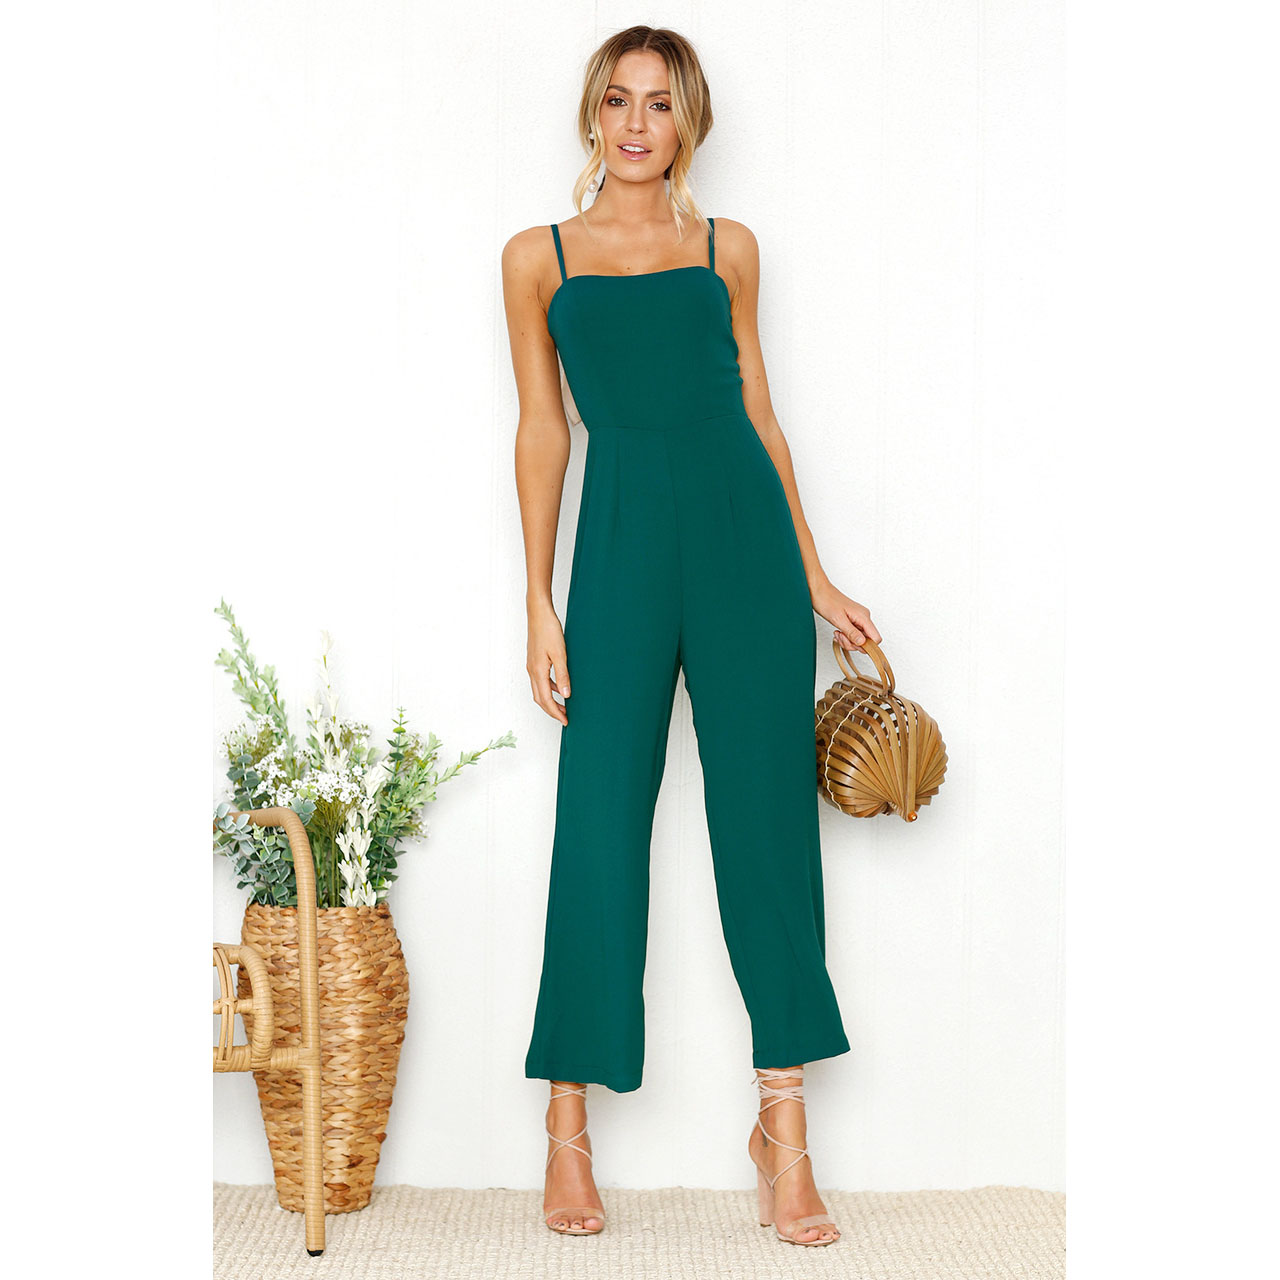 Casual Jumpsuit Women Spaghetti Strap Overalls Sleeveless Elegant Straight Jumpsuits Long Pants 2018 Summer Fashion Suit